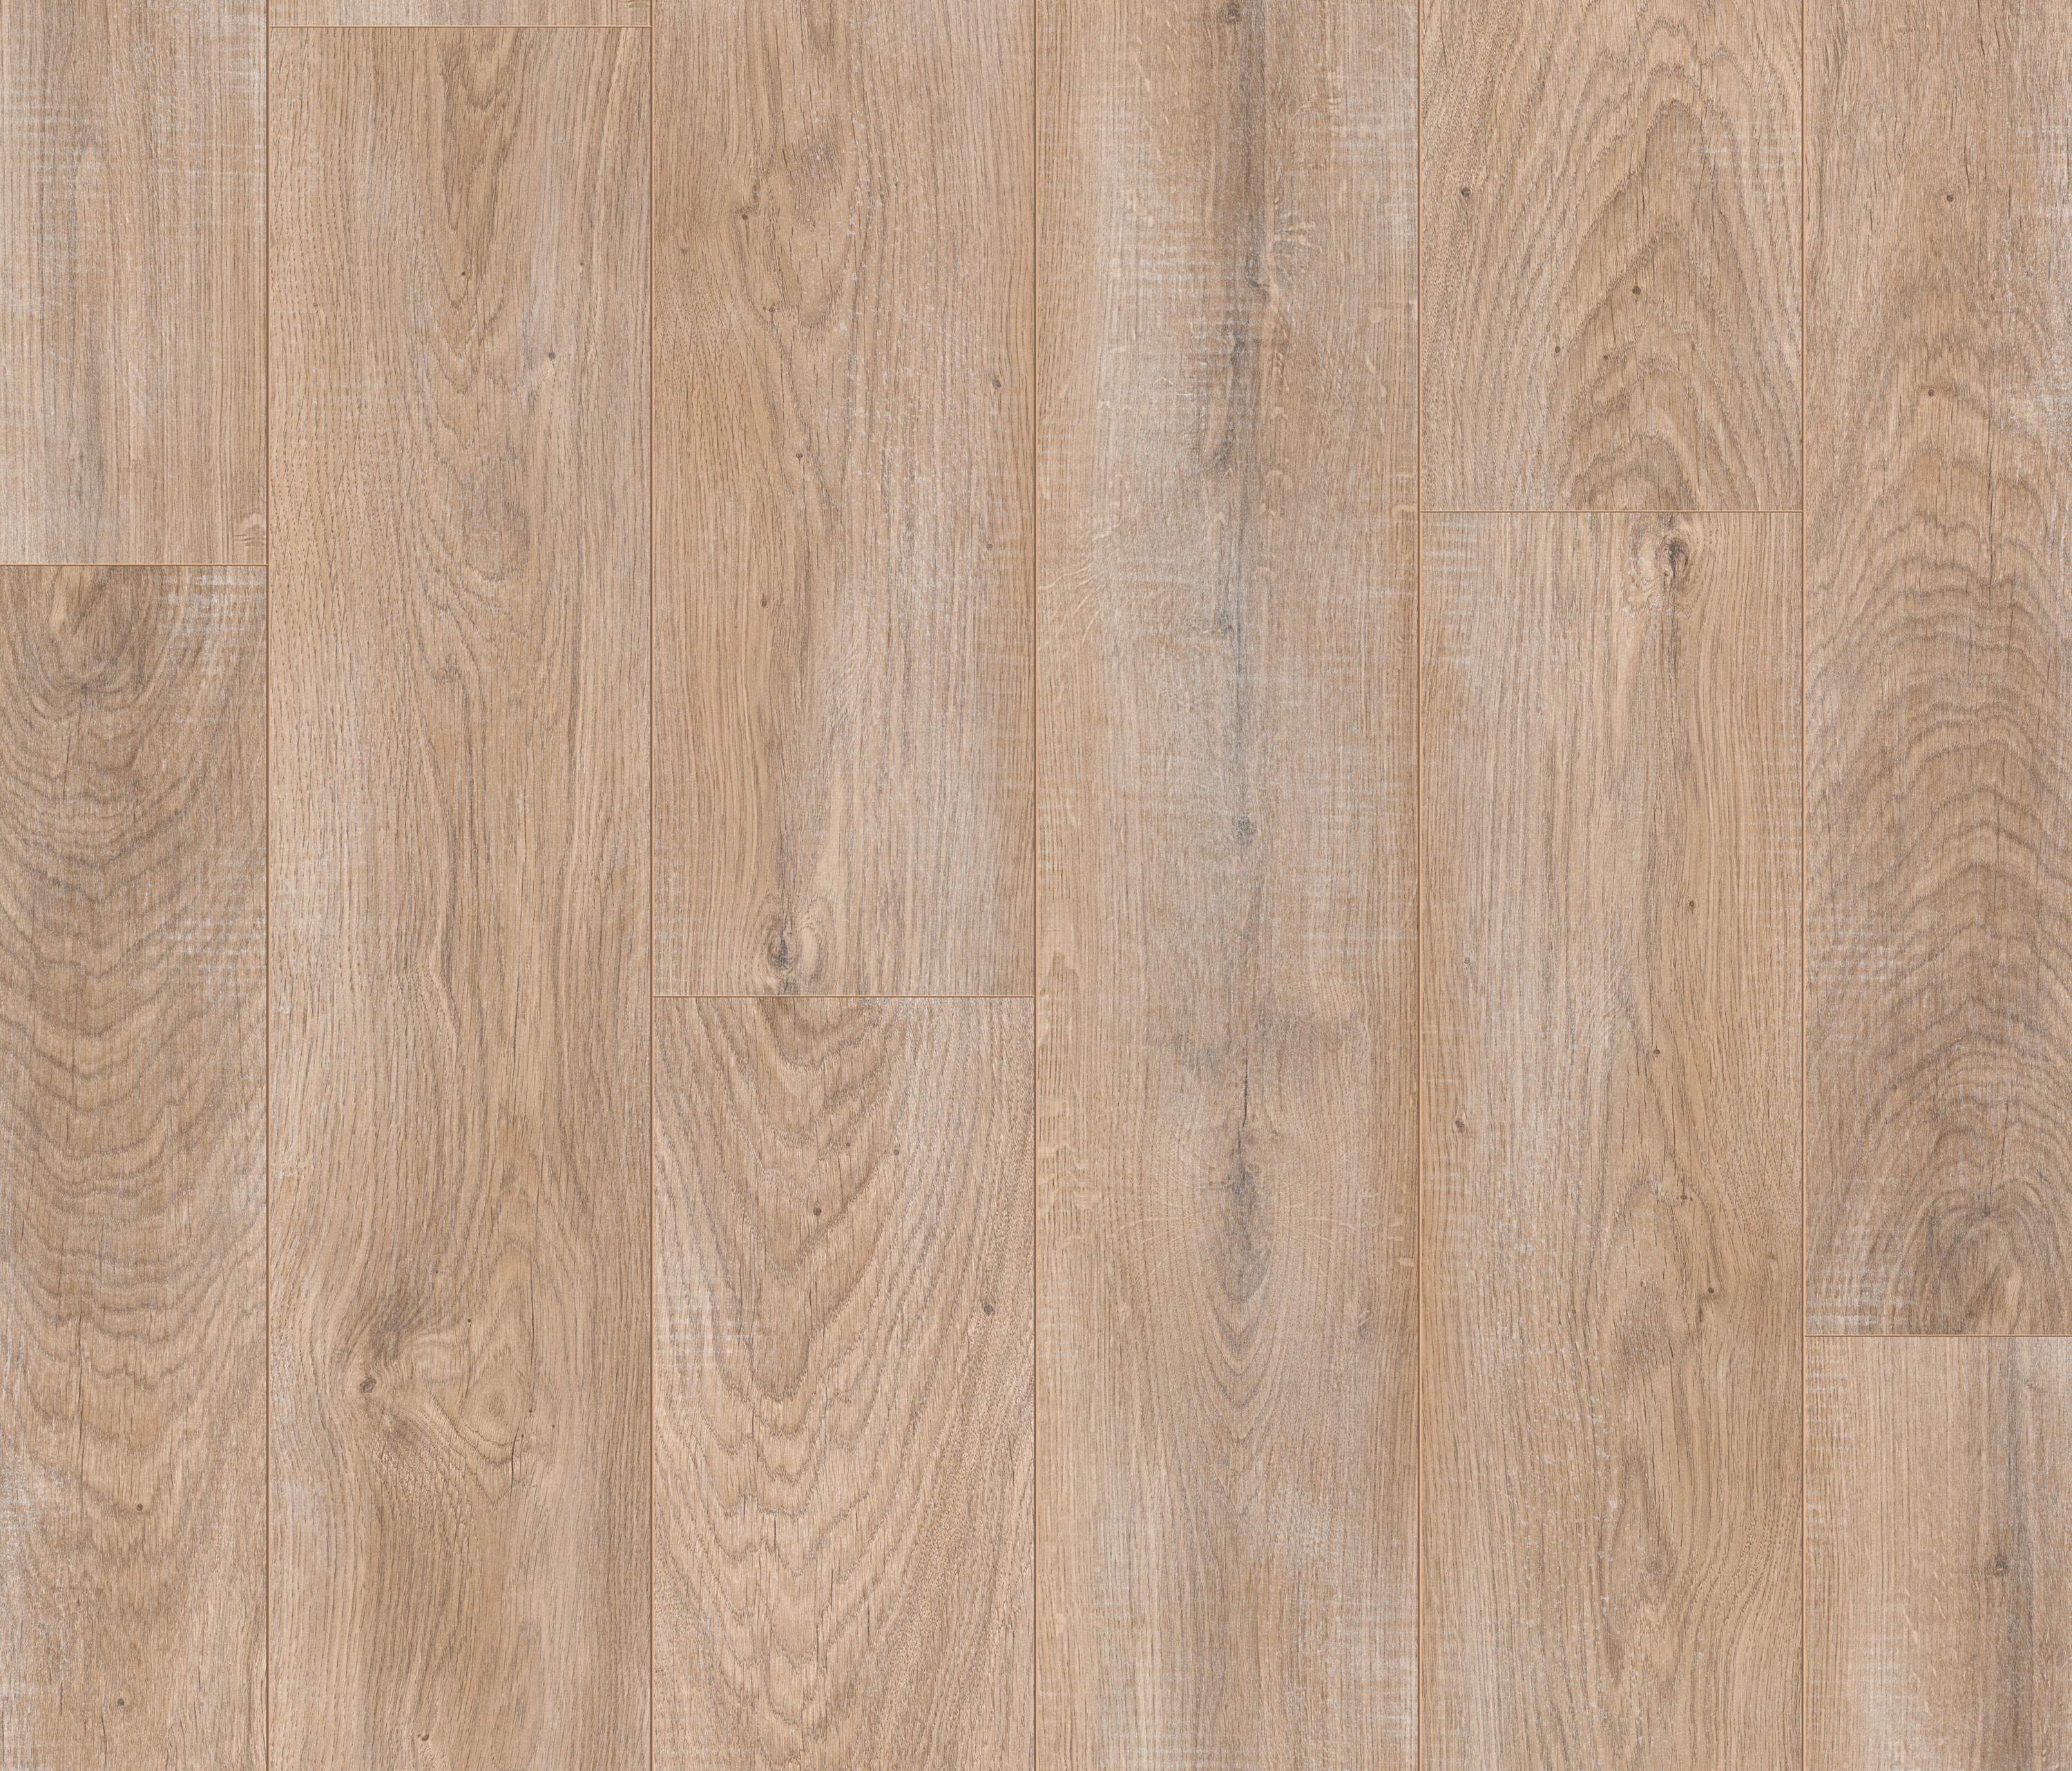 Natural Variation Chalked Blonde Oak By Pergo Laminate Flooring